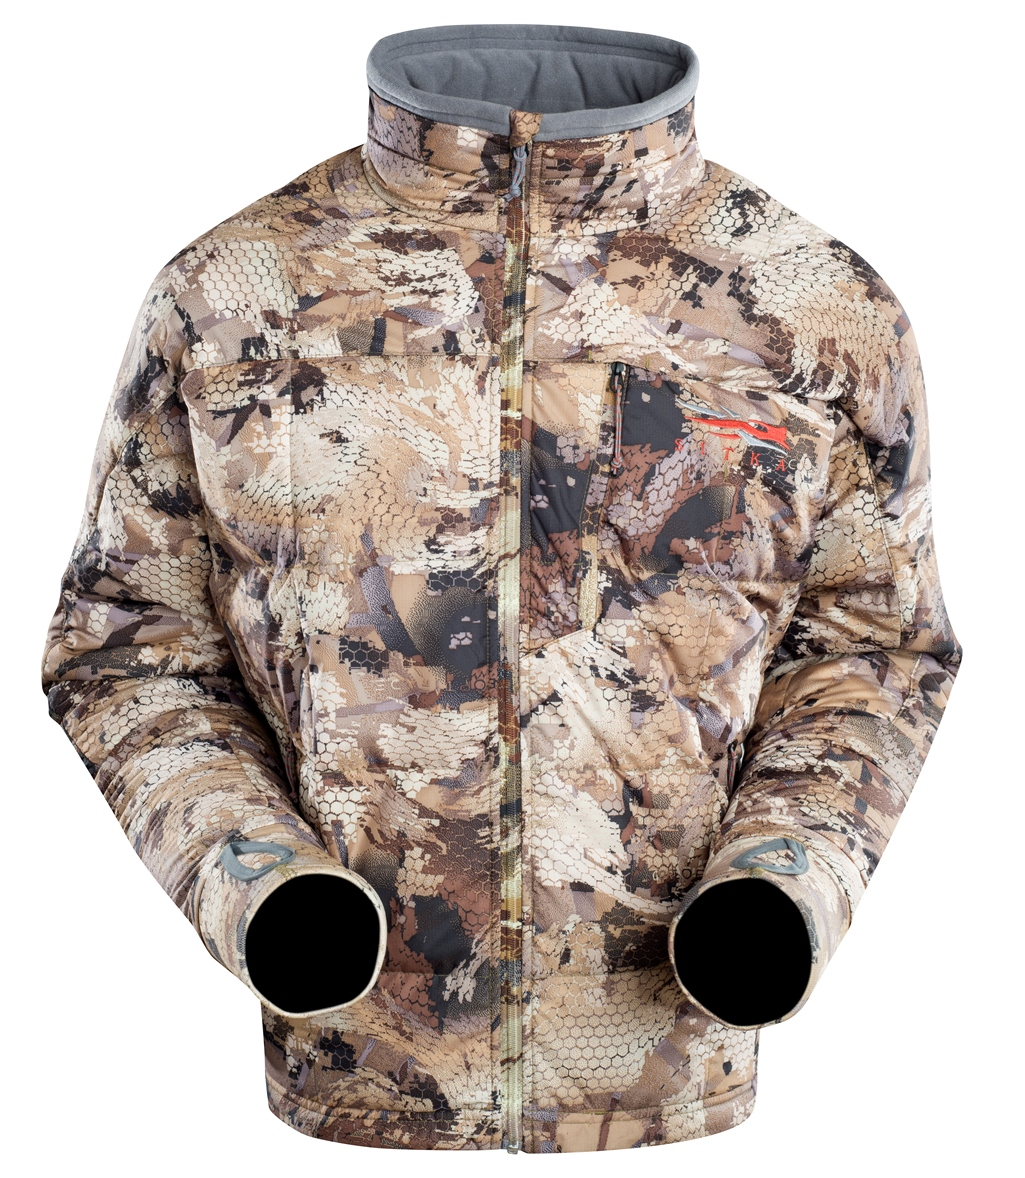 New Fahrenheit Series from Sitka Gear Offers Insulation, Even in Wet Conditions